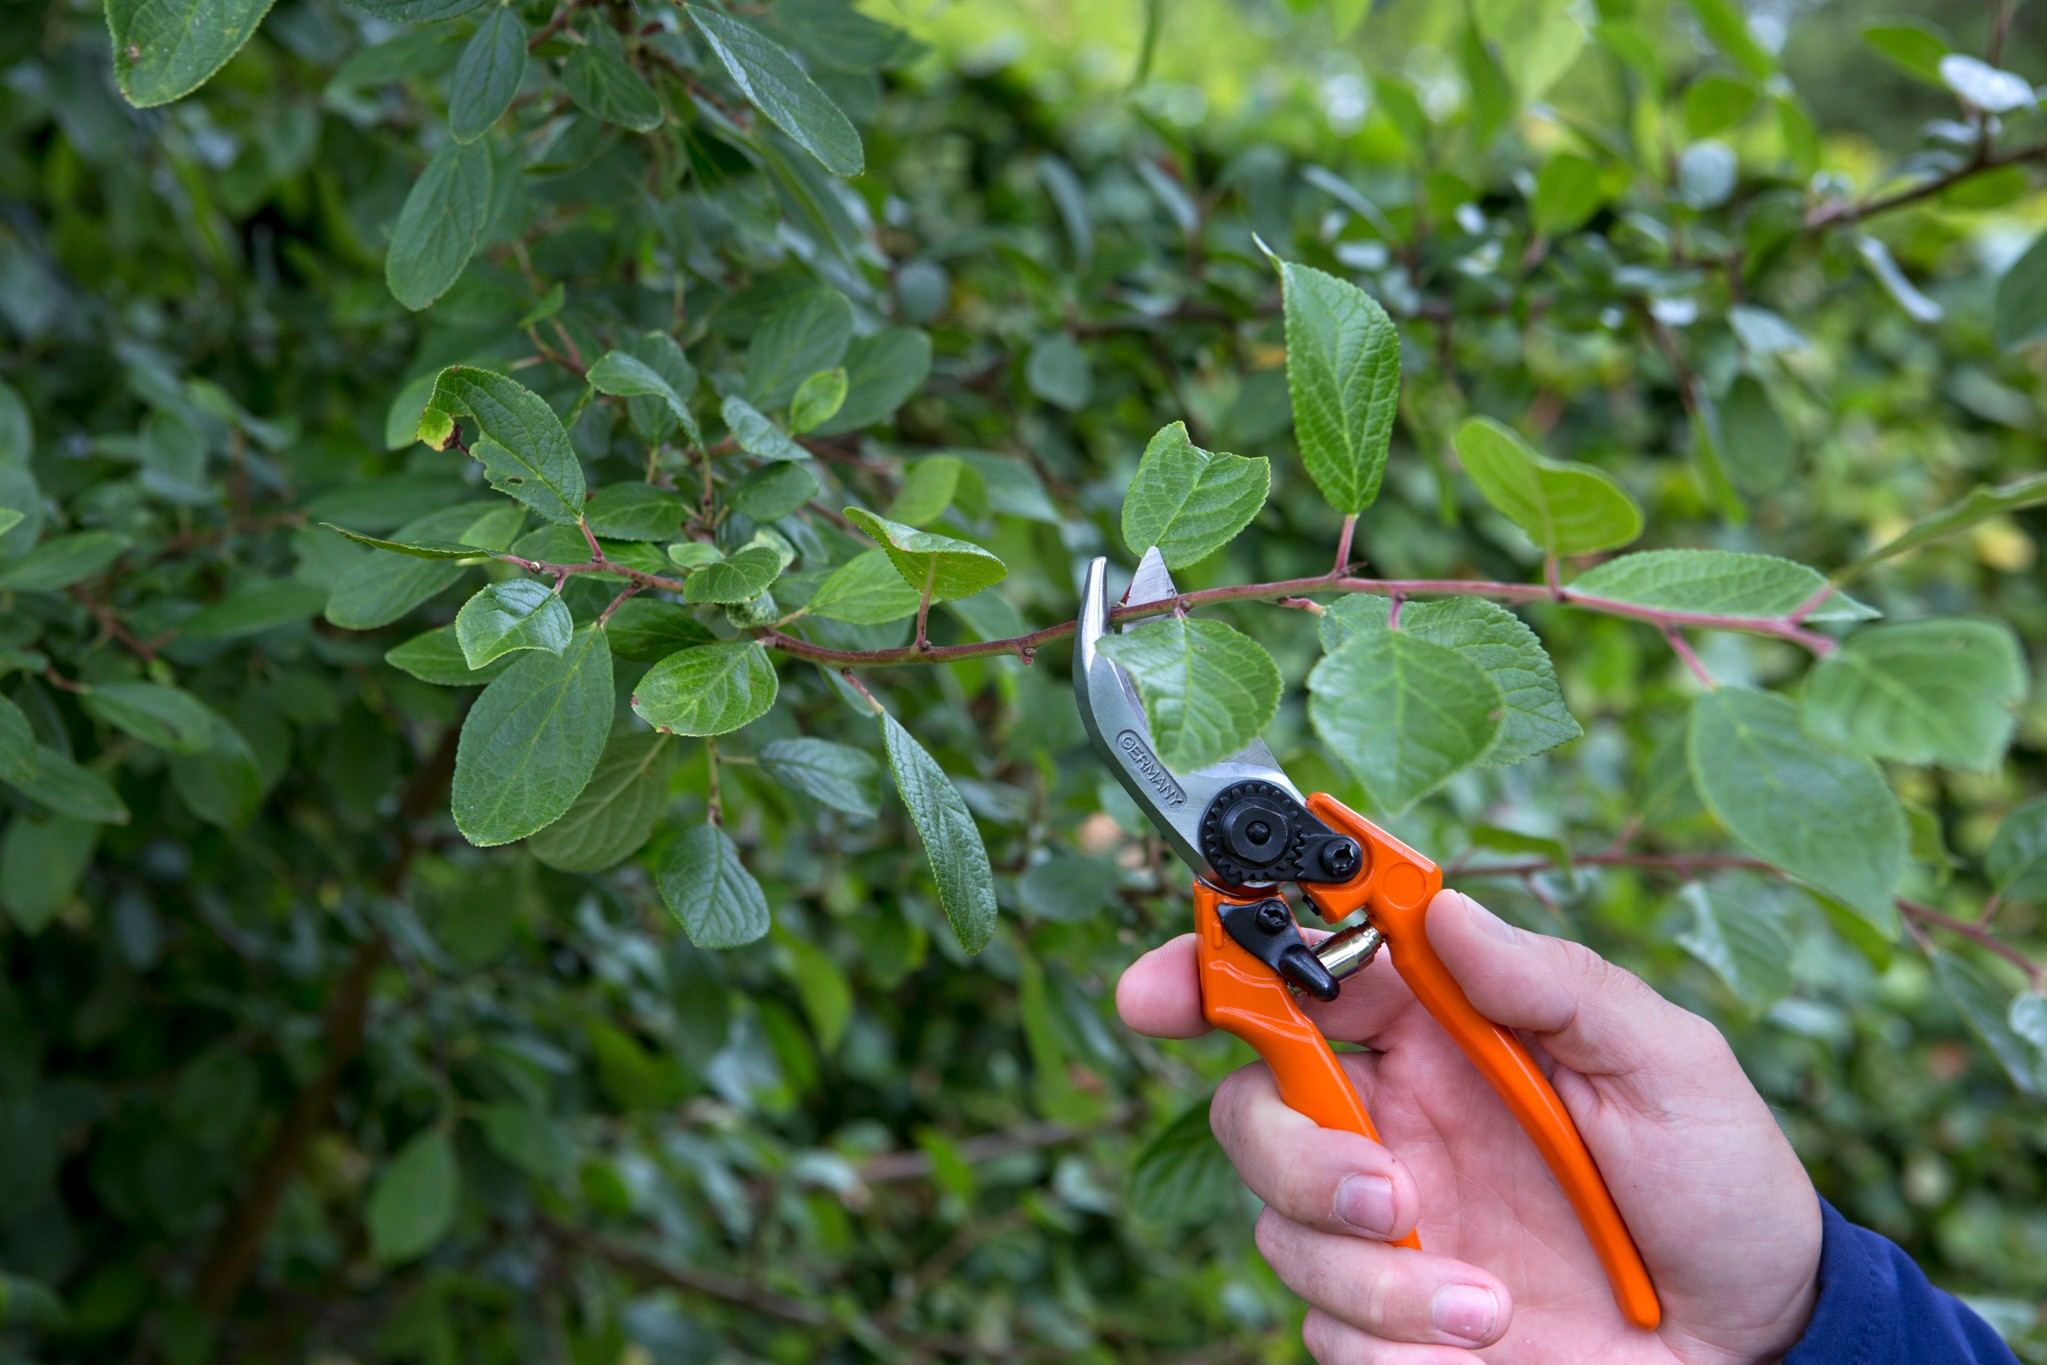 Pruning a plum tree in summer